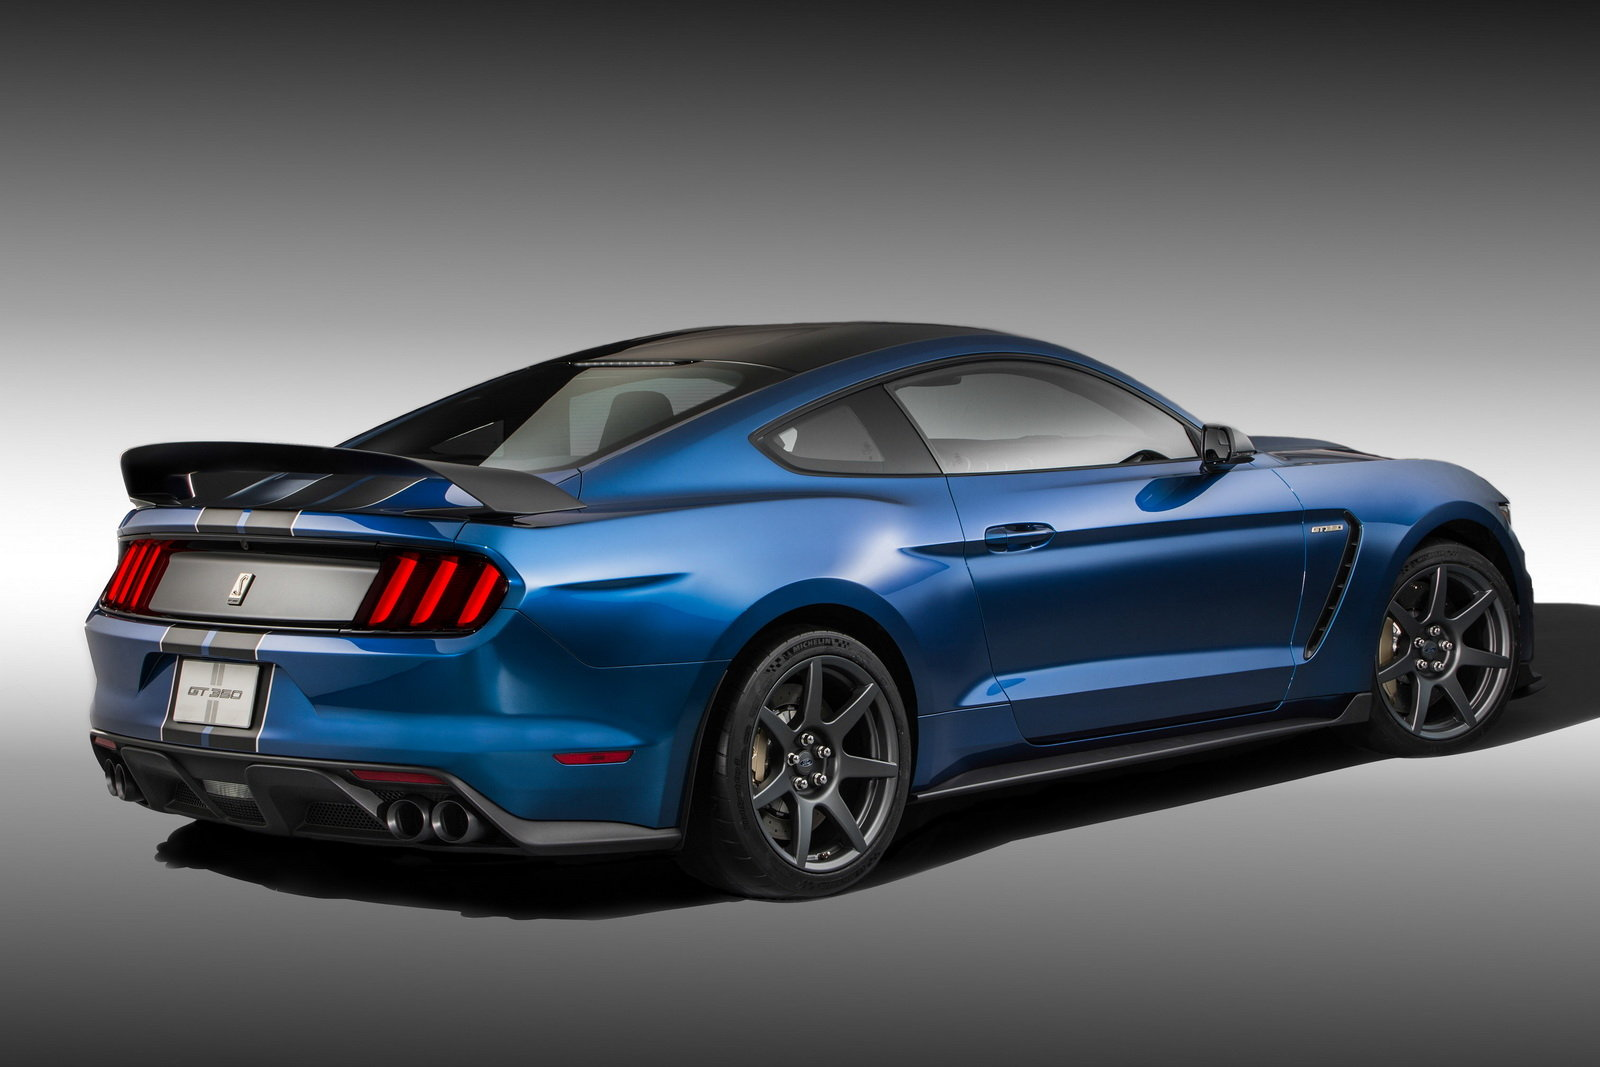 2016 Ford Mustang Shelby GT350R Rear Side Profile